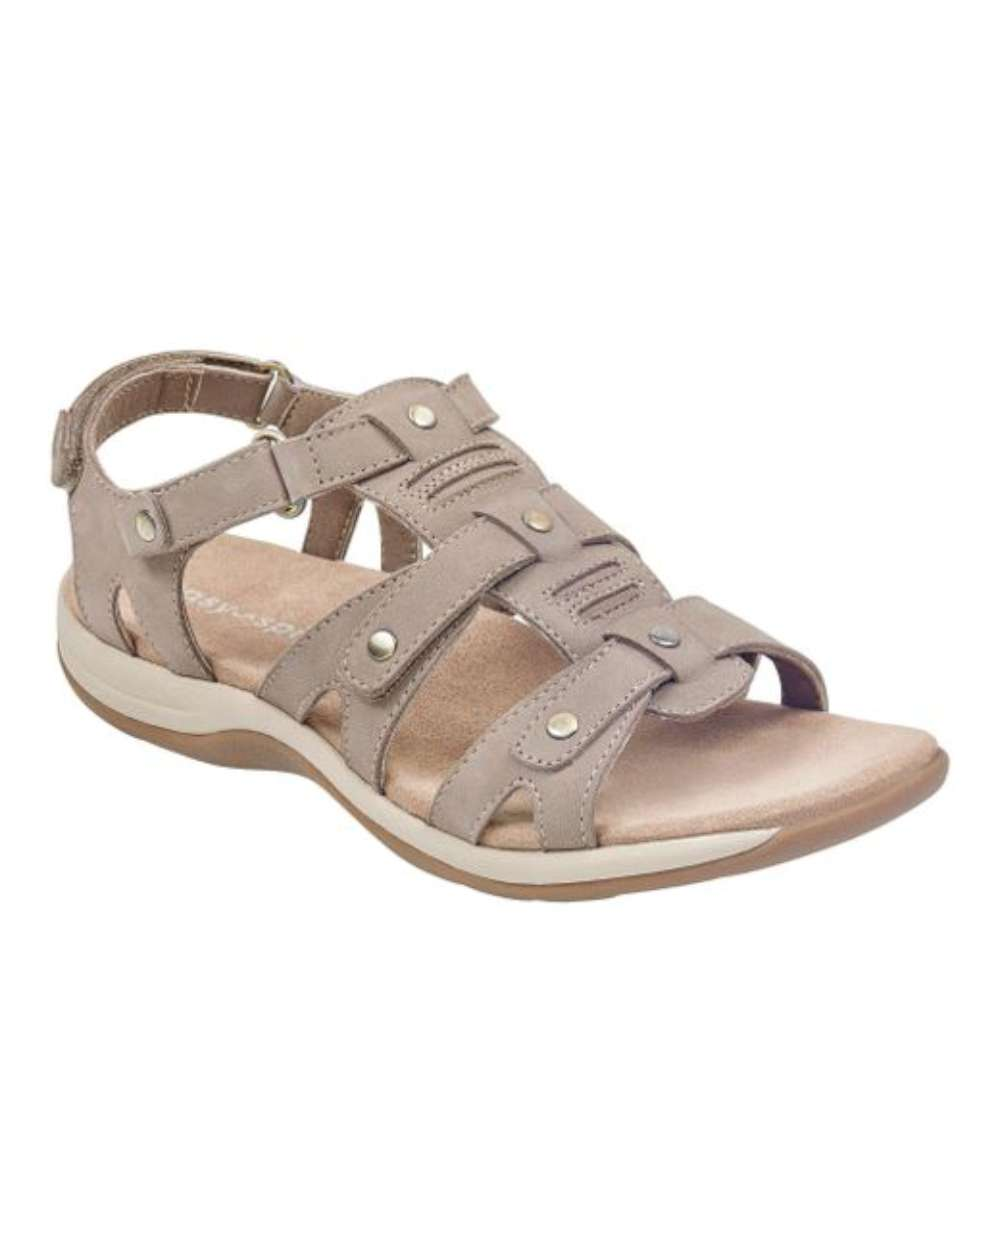 Easy Spirit mujer Sailors Leather Open Toe Casual Sport, Taupe, Talla 6.5